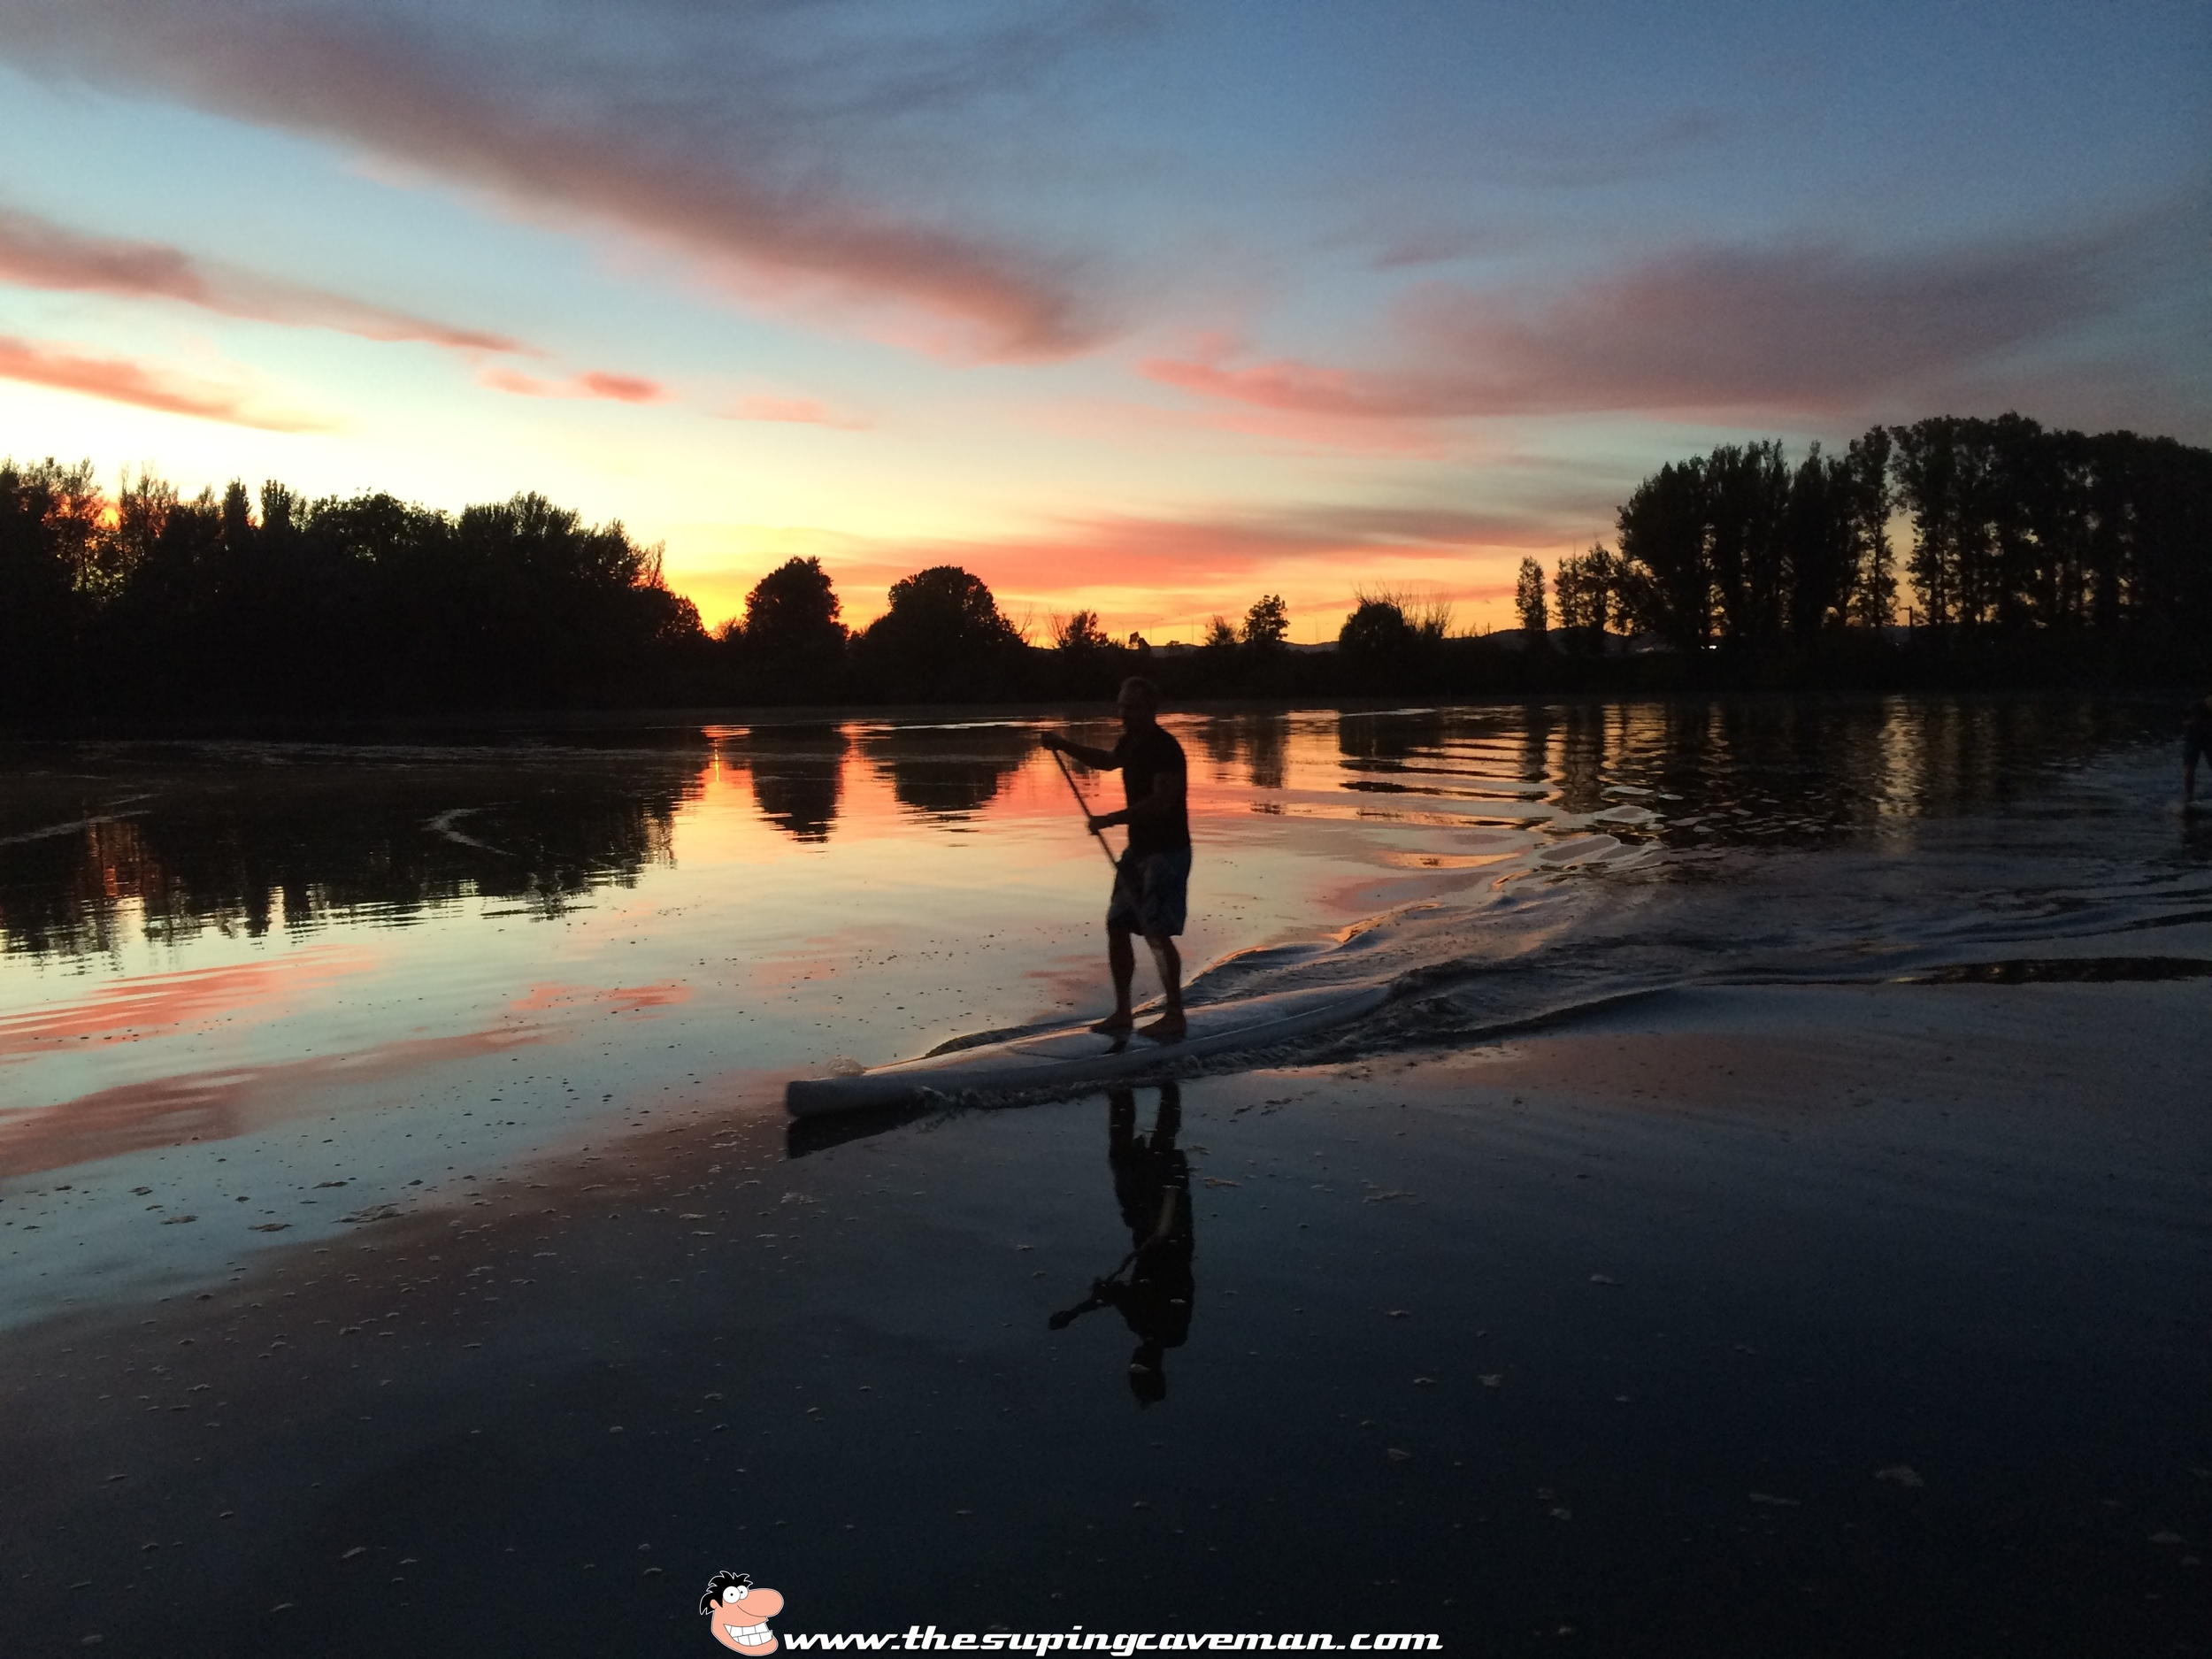 Capital SUP paddler Pete Garbutt heading in for his next activity